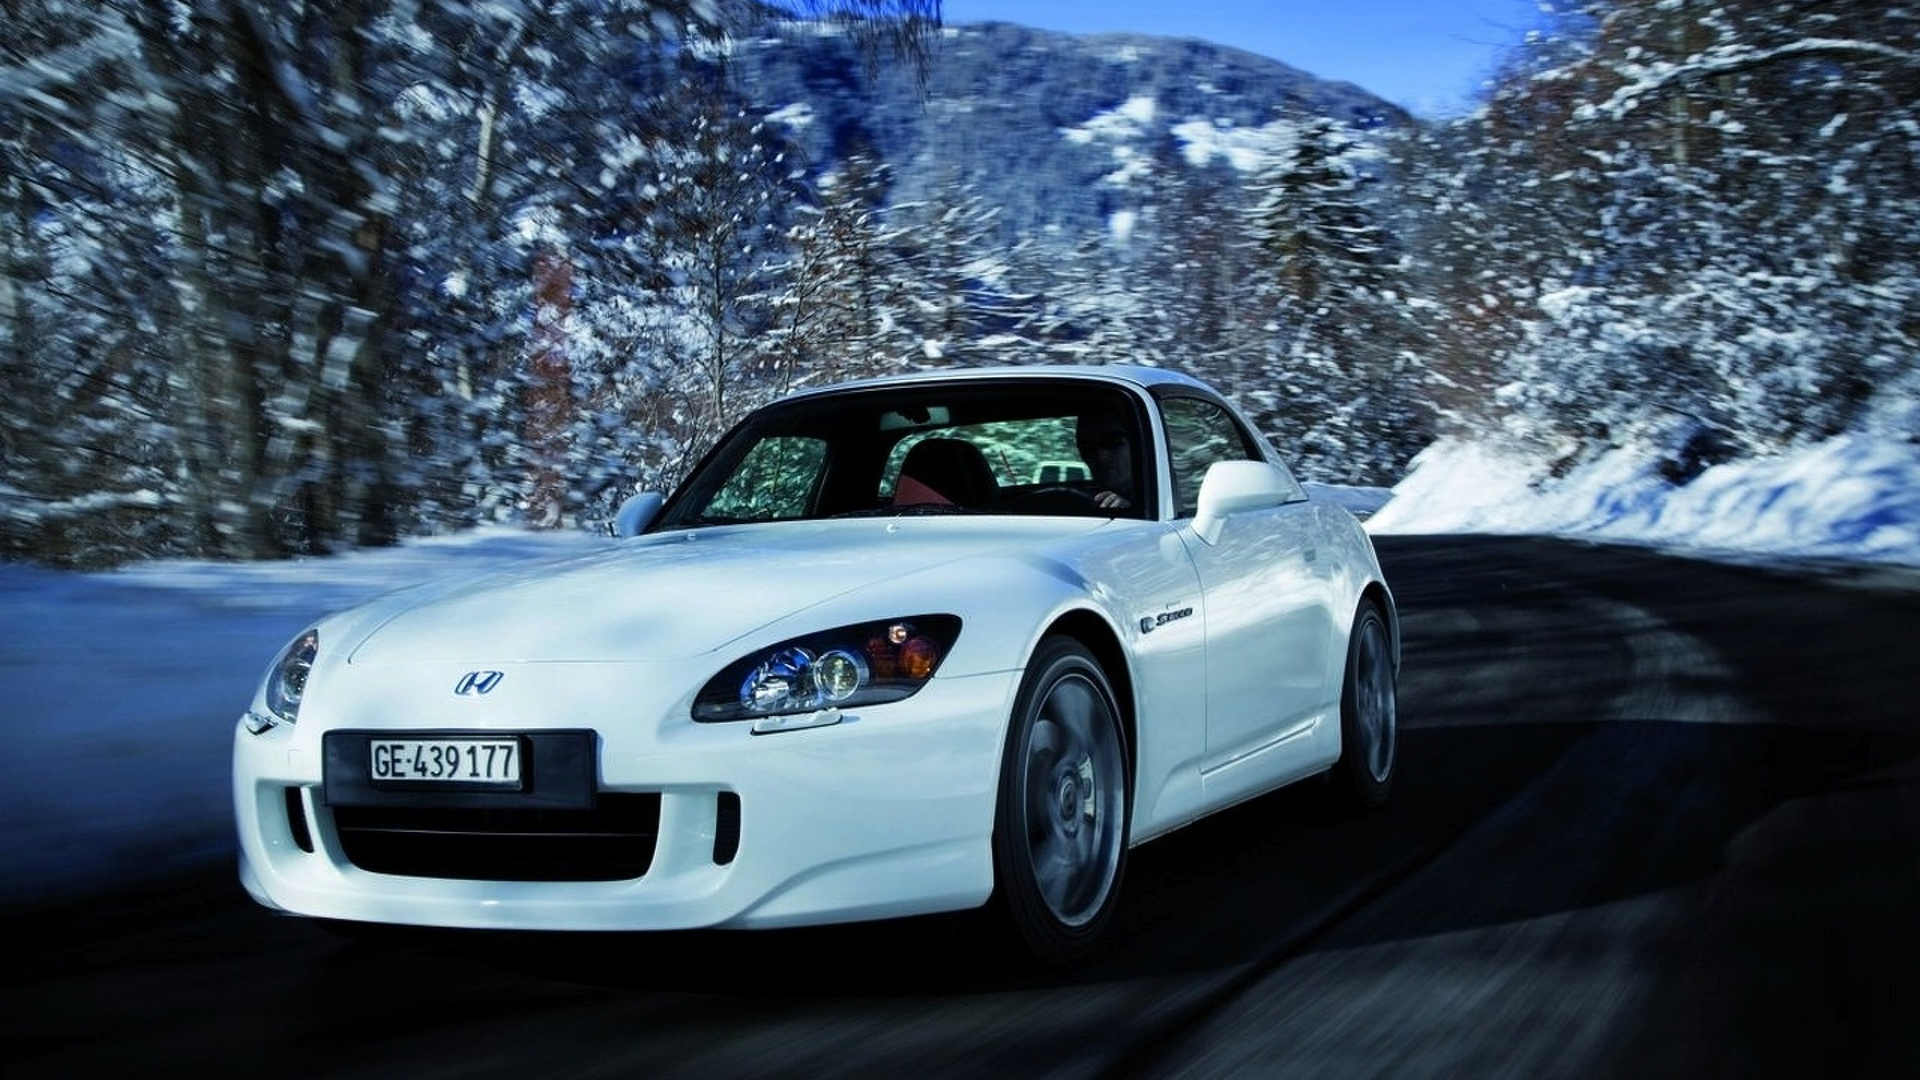 Honda S2000 revival set for 2017 launch with 350 bhp - report